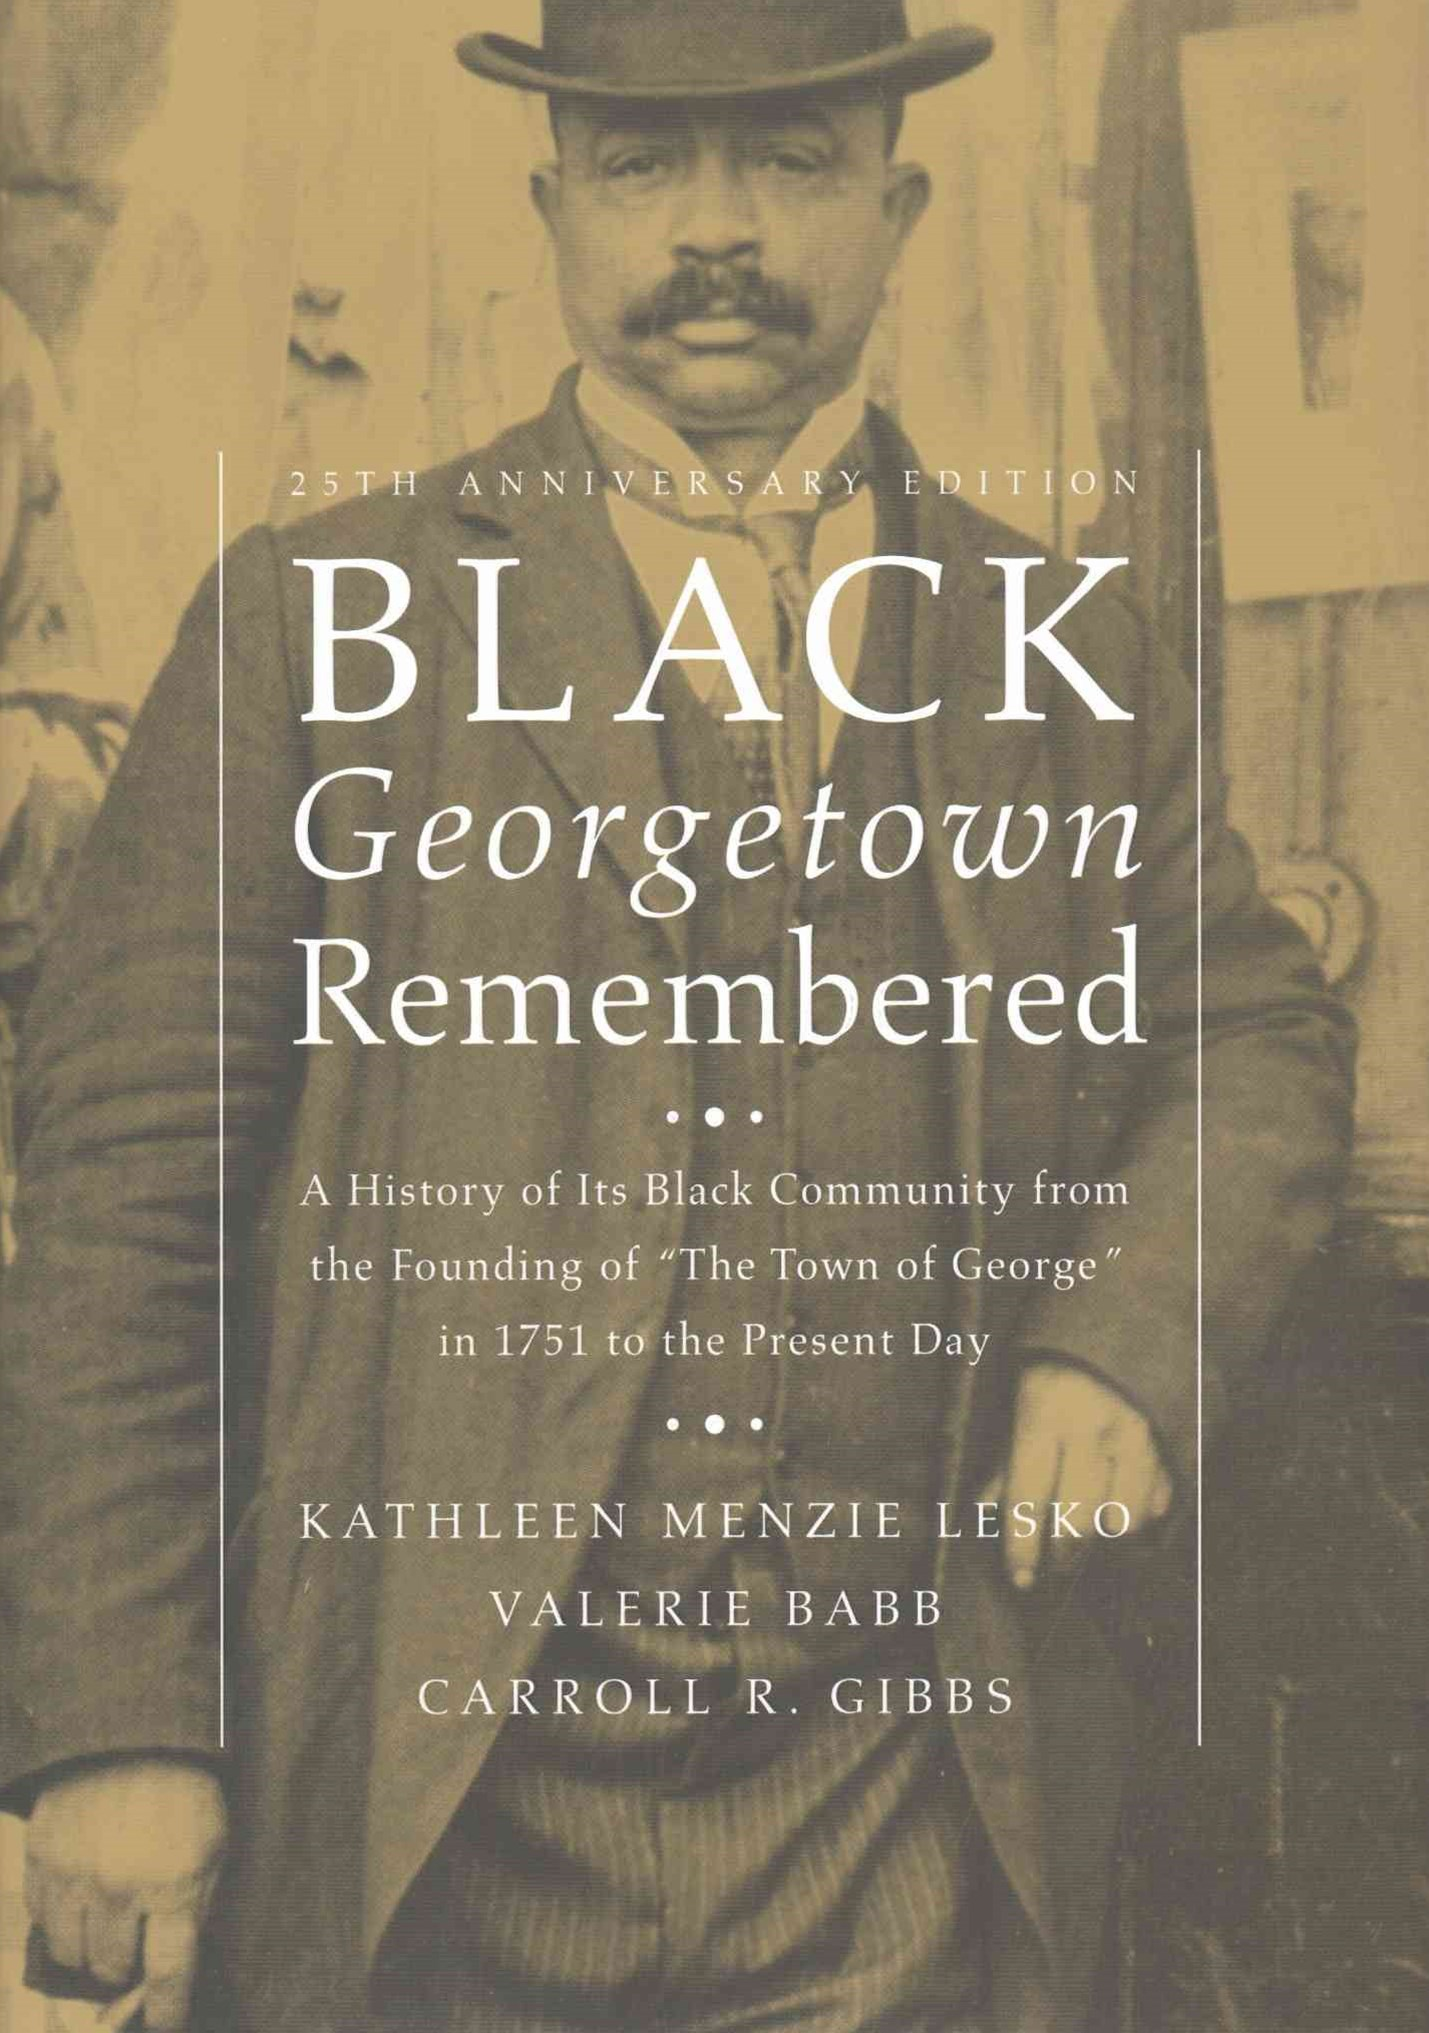 Black Georgetown Remembered